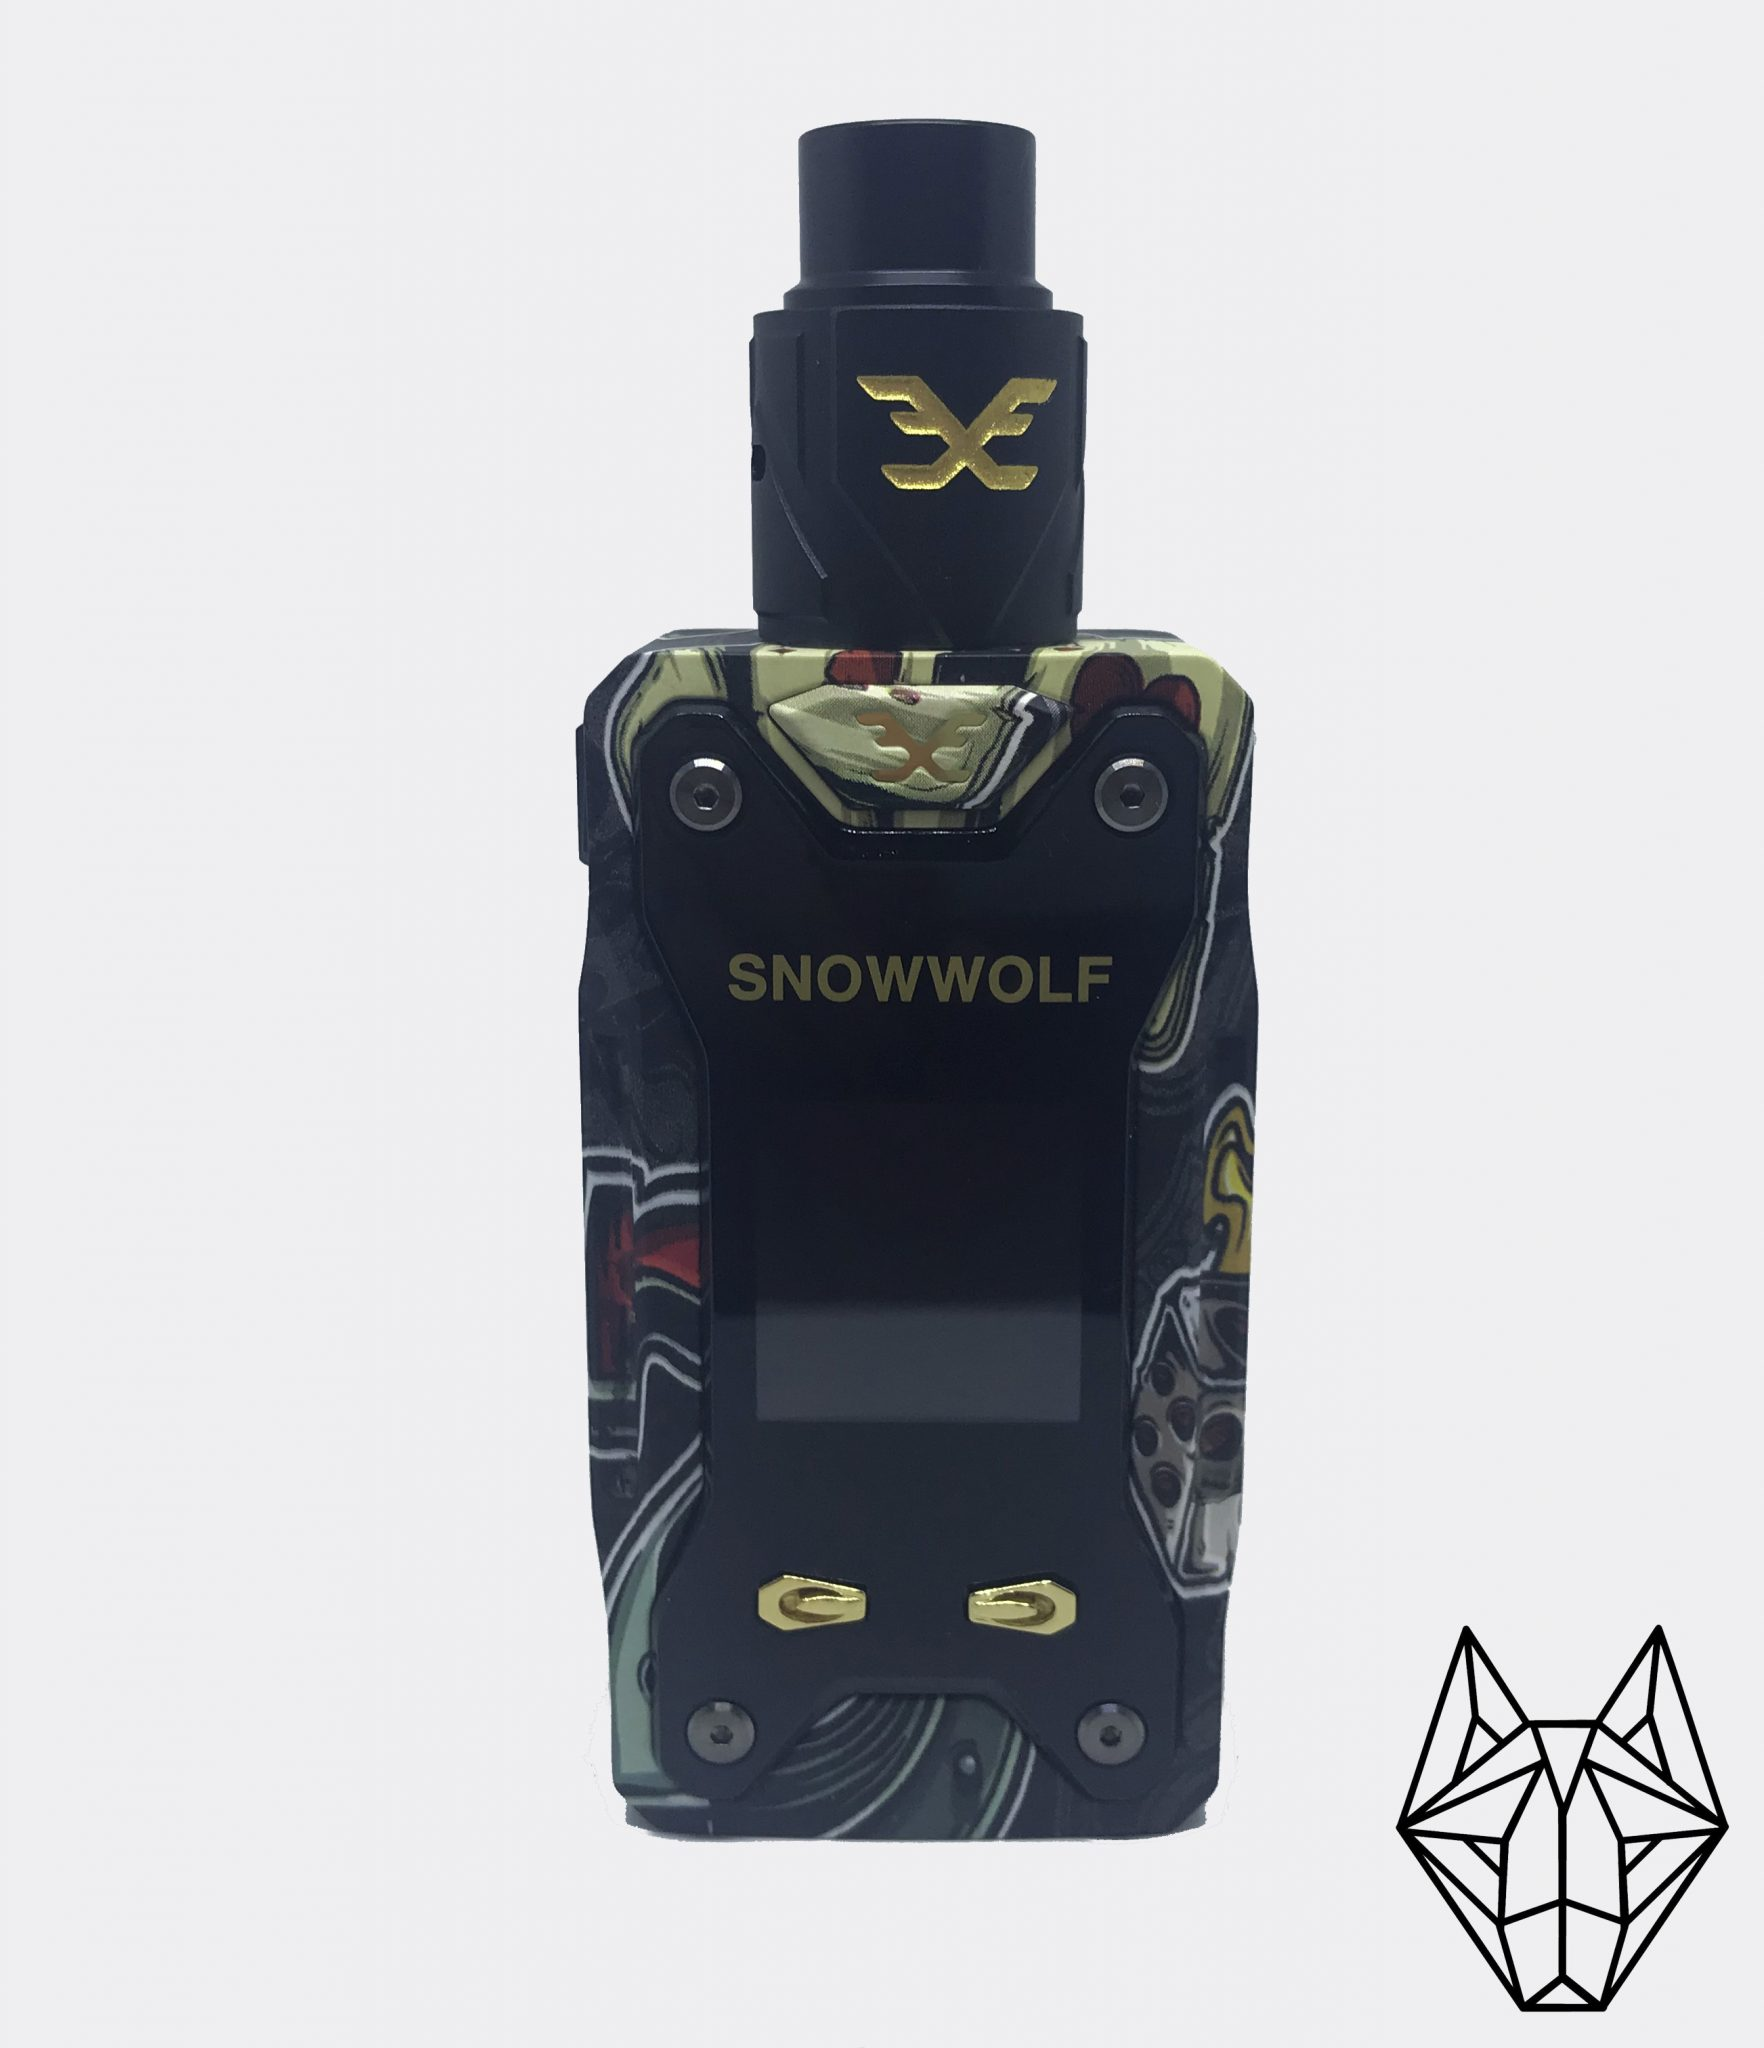 SnowWolf XFENG Starter Kit Review_1